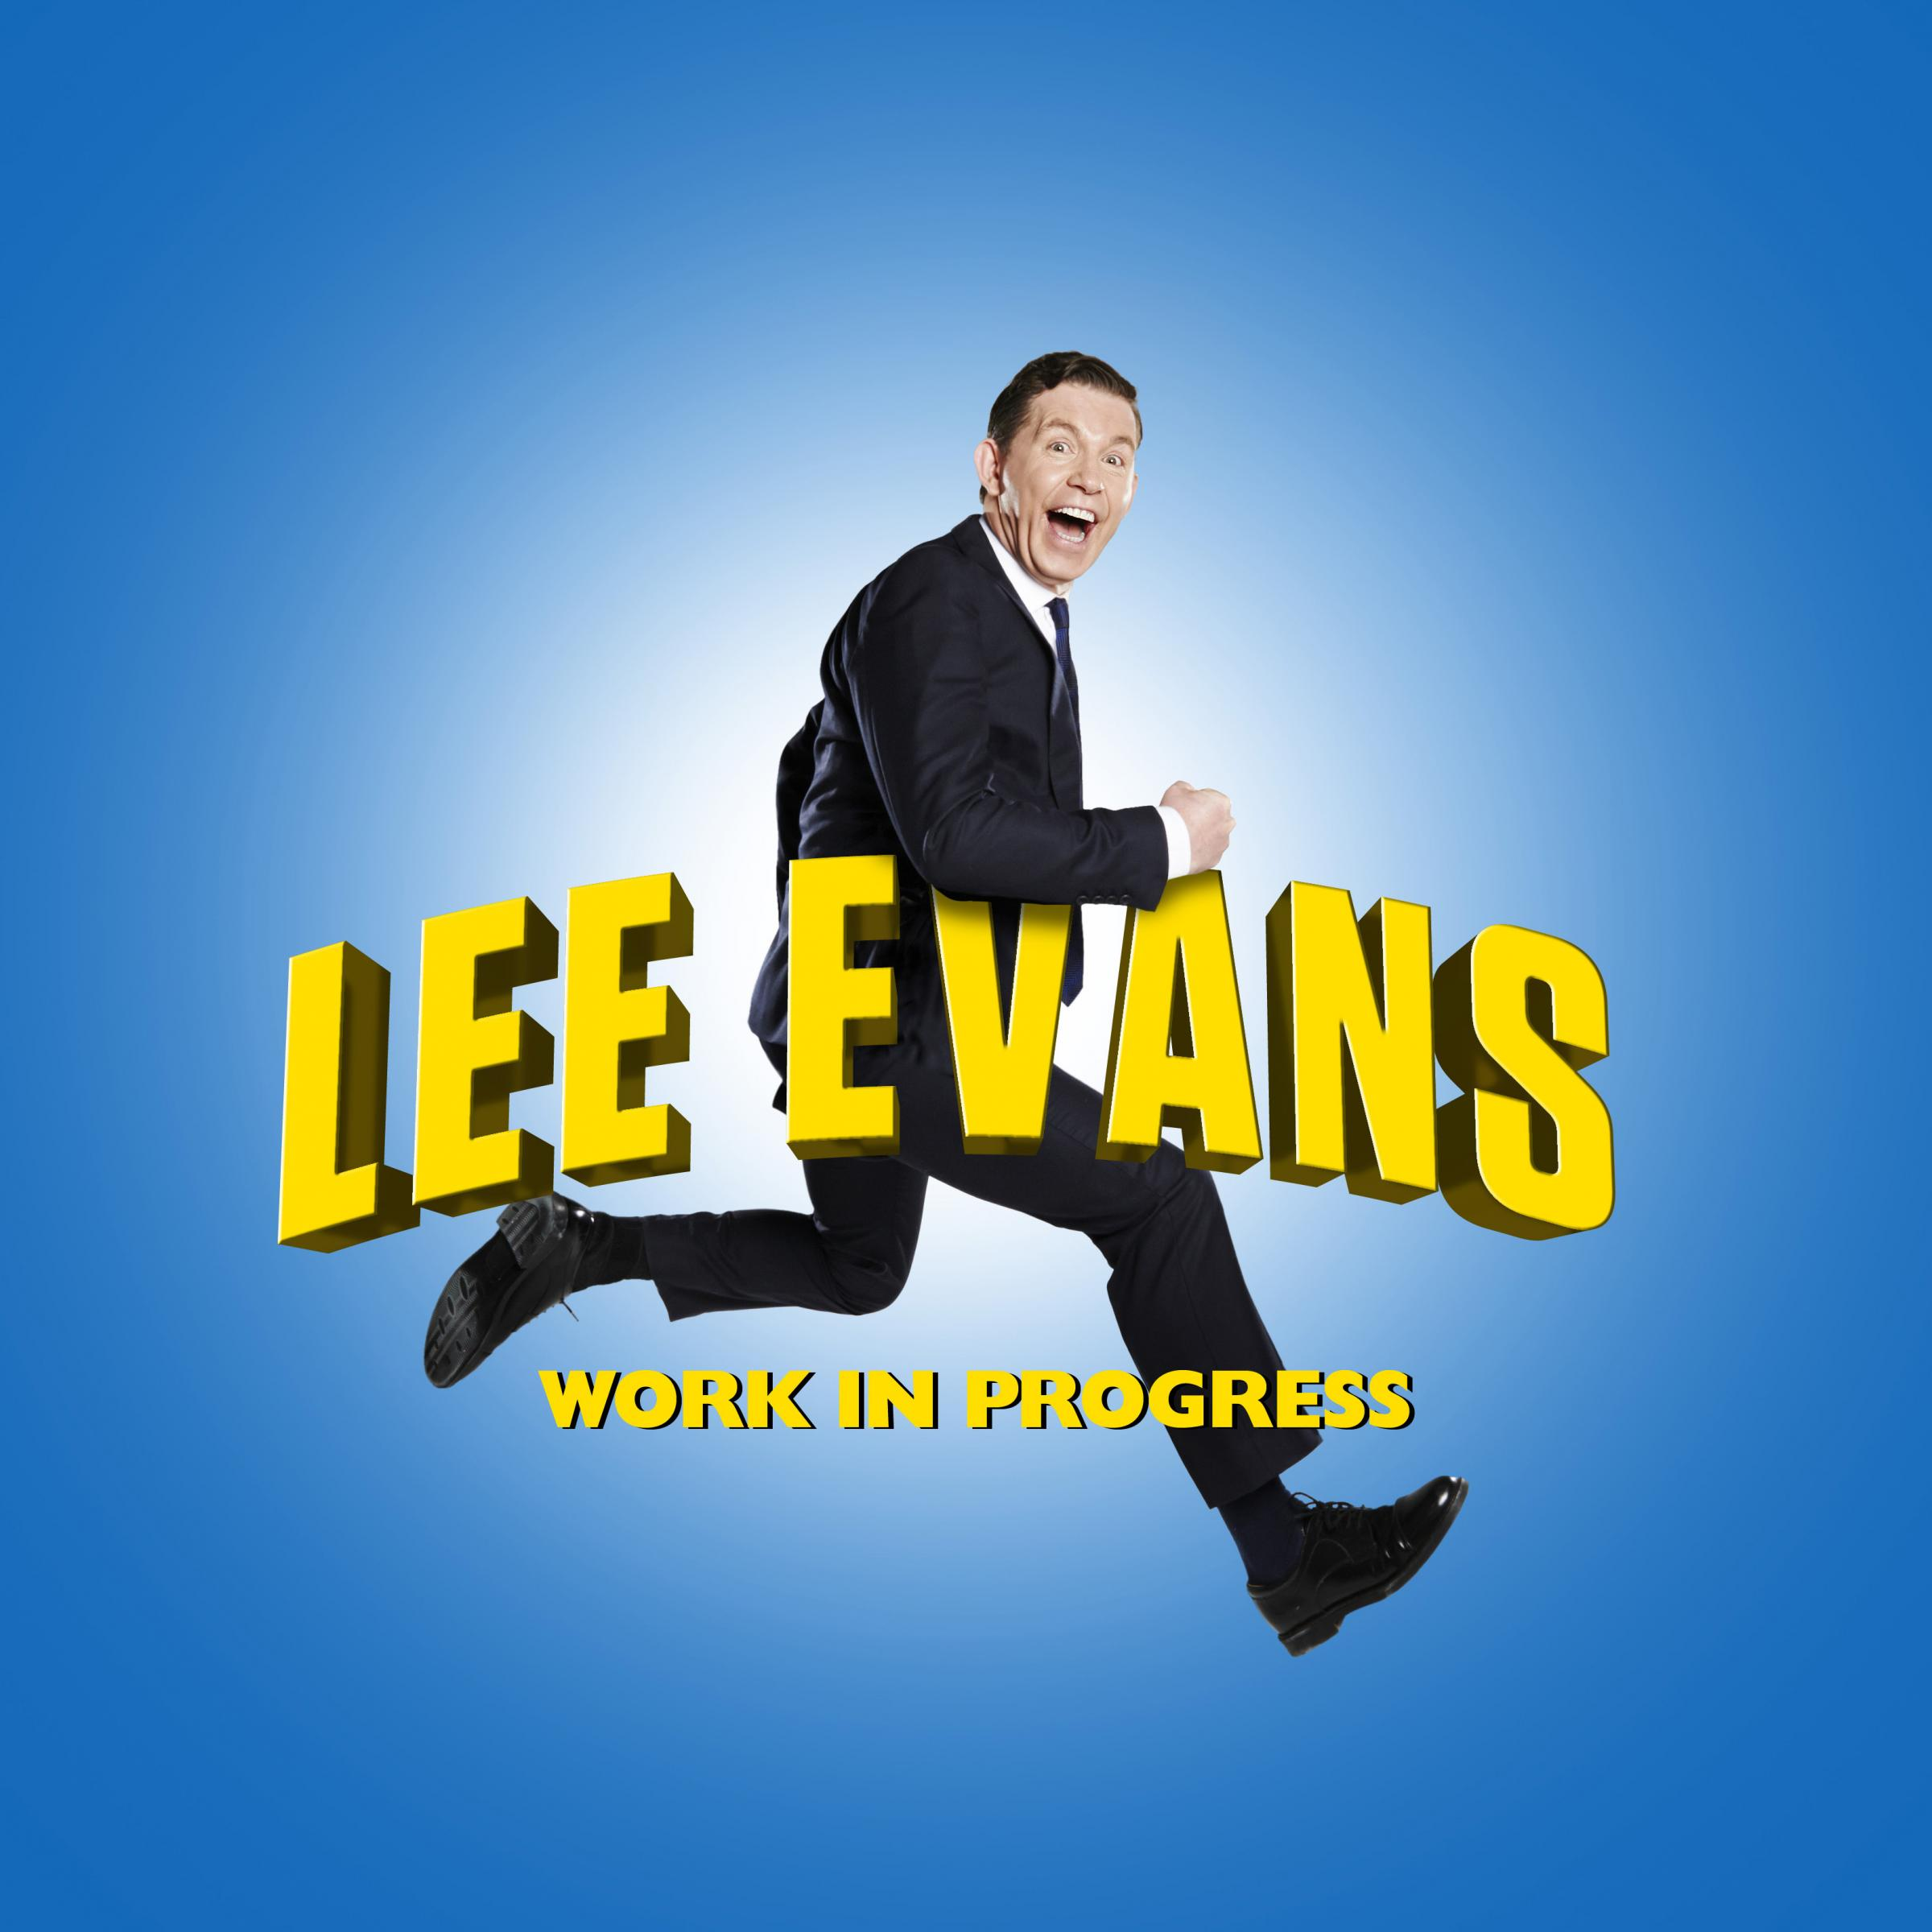 Work in Progress: Lee Evans